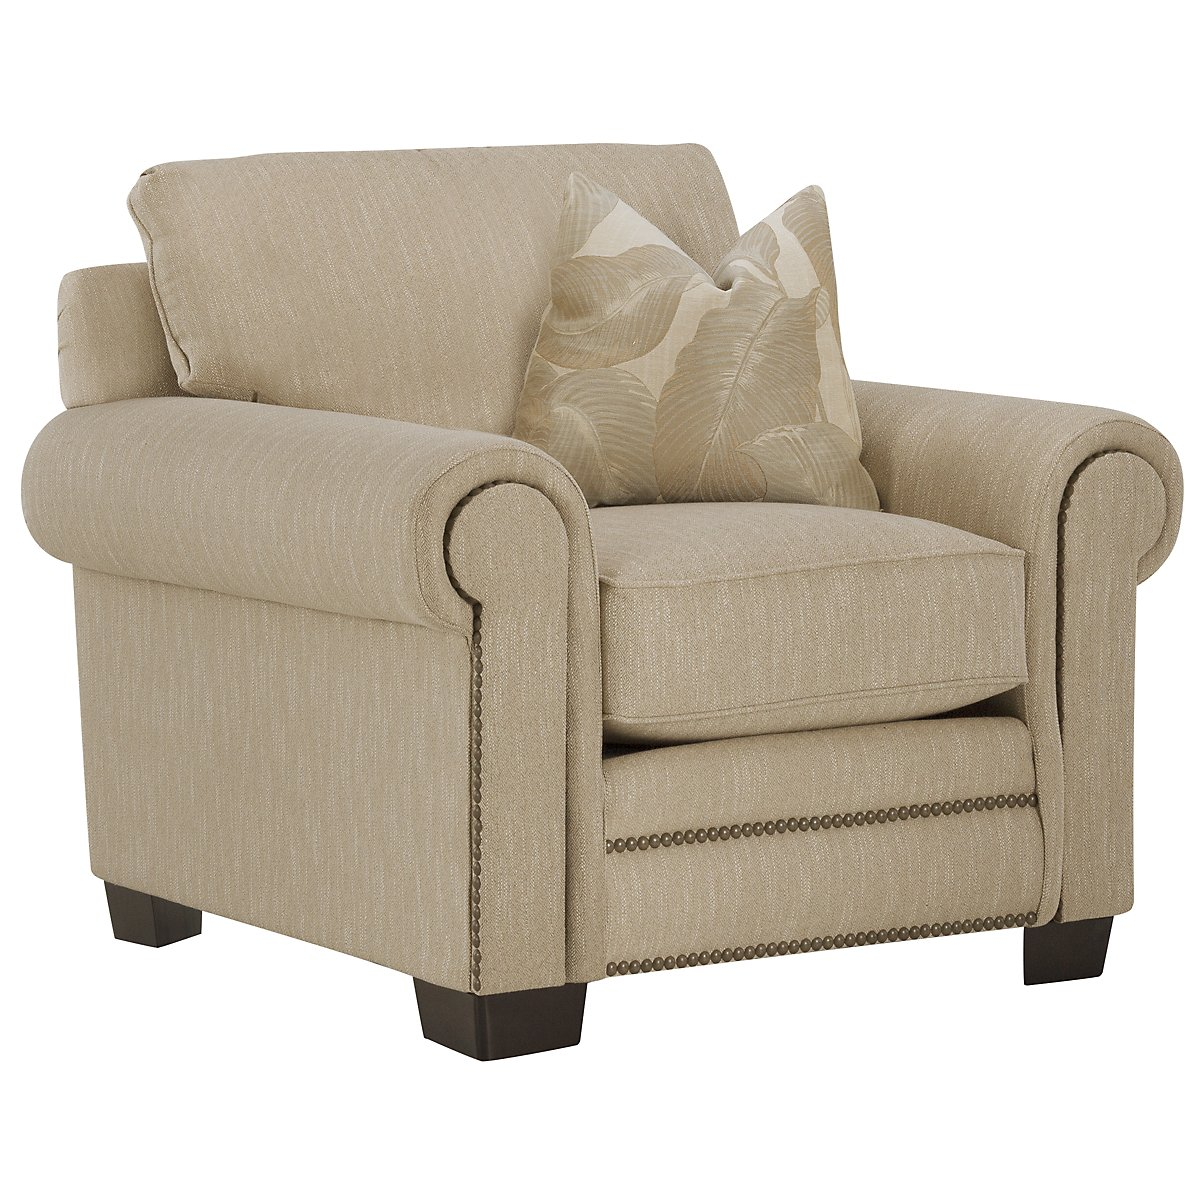 Erin Light Brown Fabric Chair